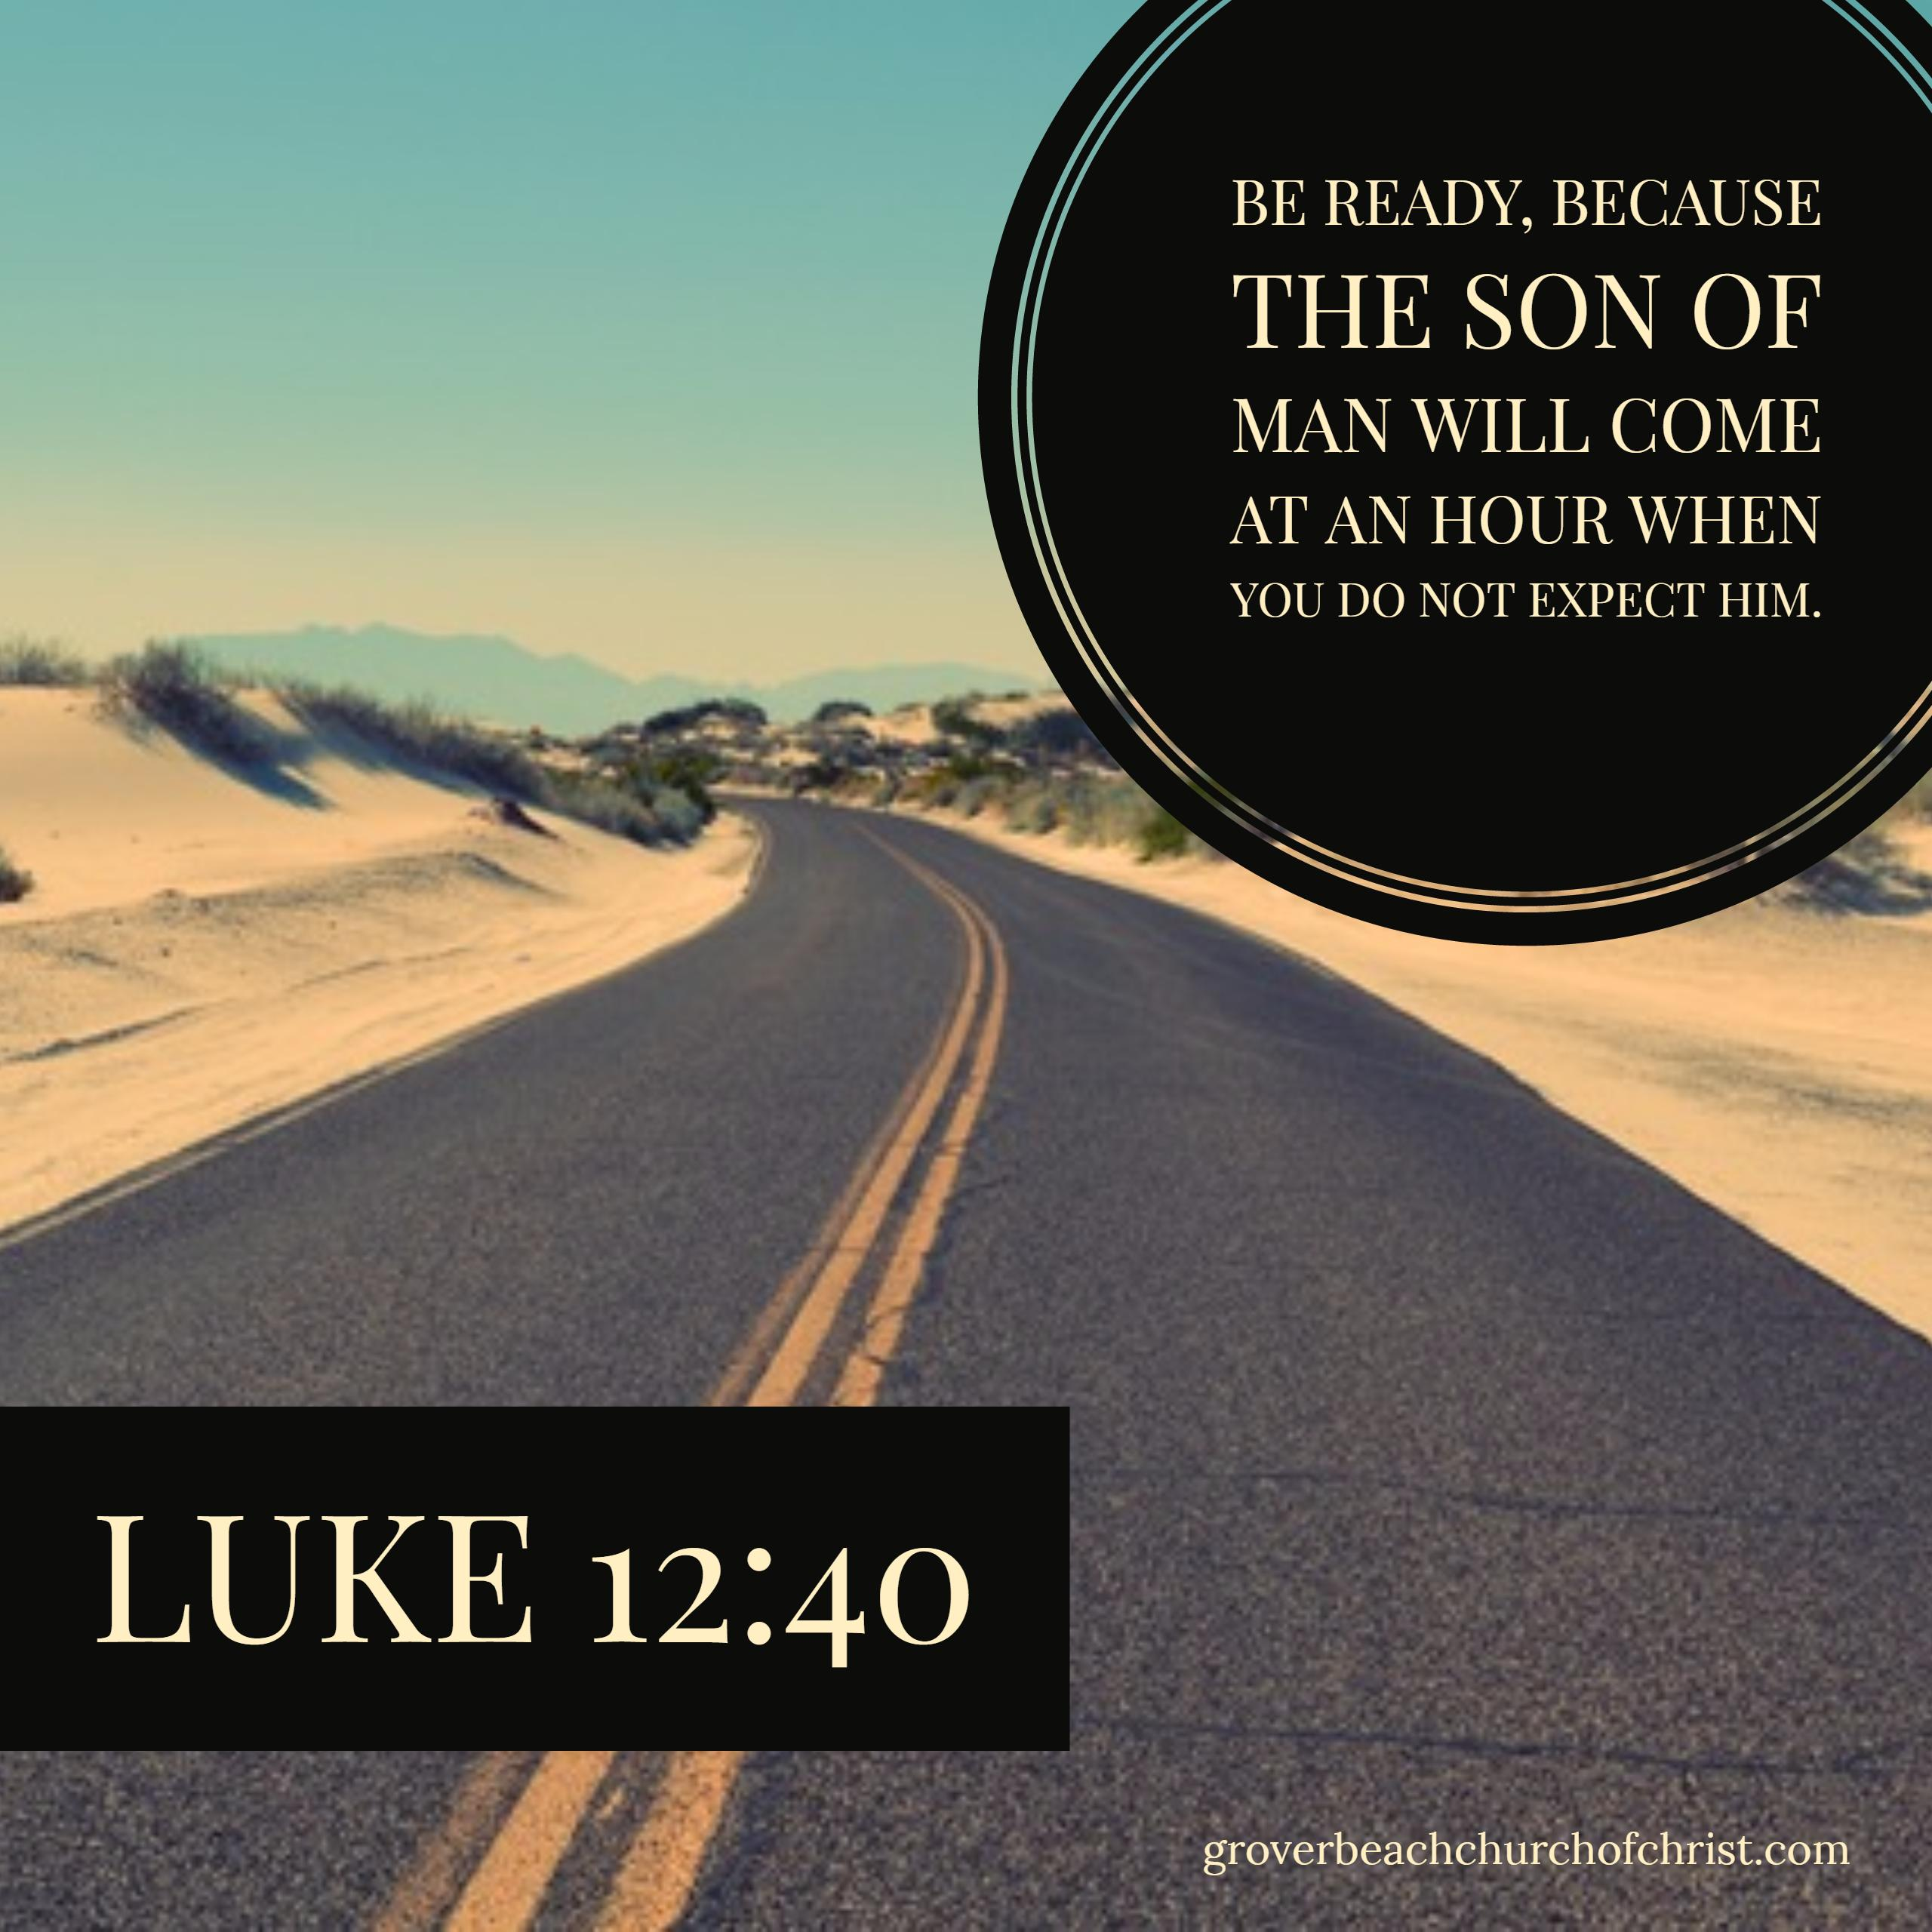 luke-12-40-be-ready-because-the-son-of-man-will-come